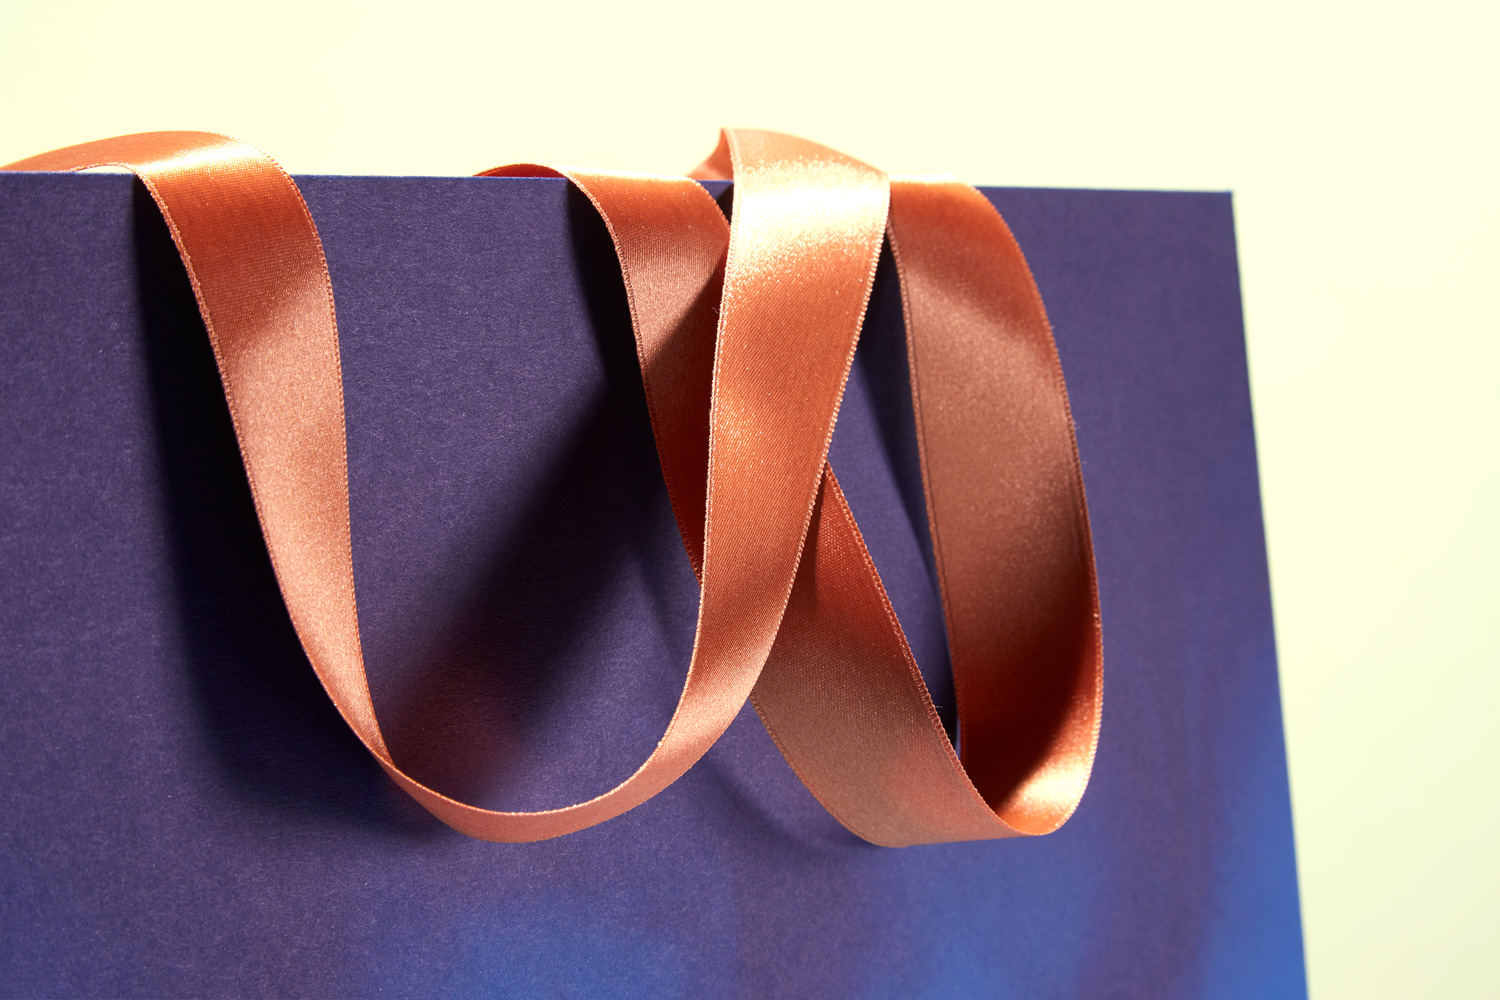 Progress Packaging Luxury Carrier Branded Colorplan Paper Retail Events Bag GF Smith Rose Design